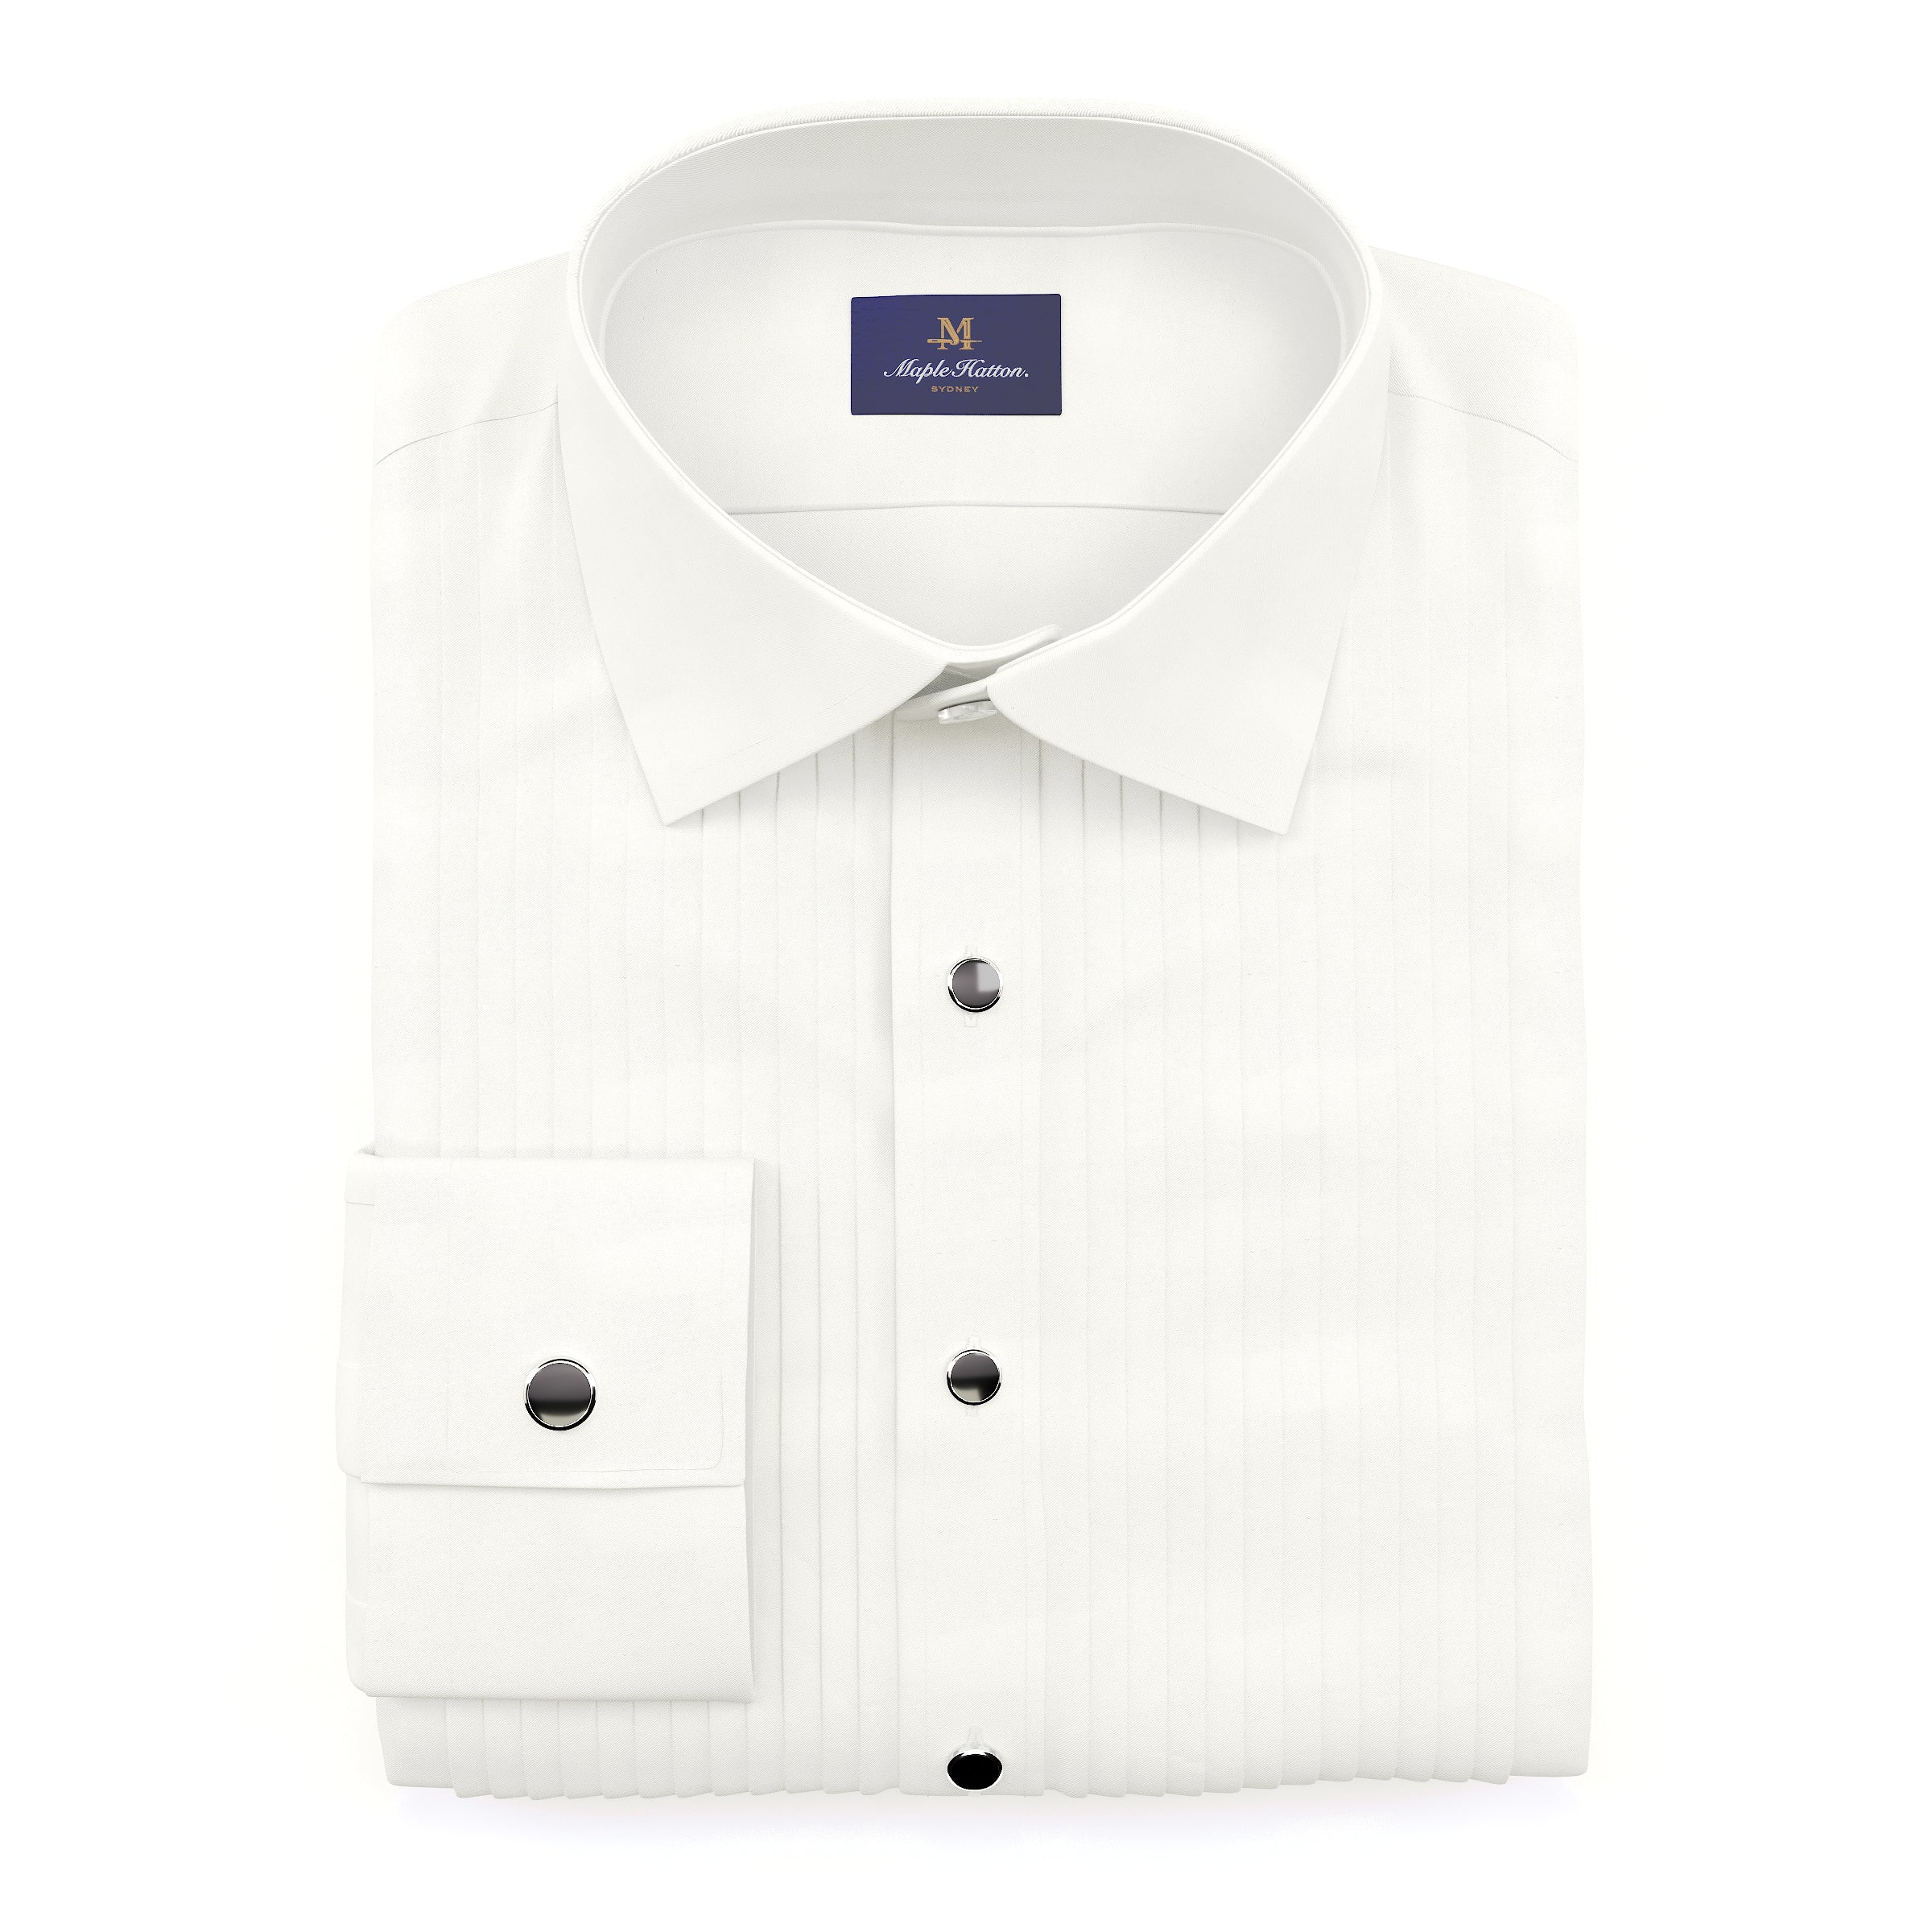 The Royal White Tuxedo Shirt